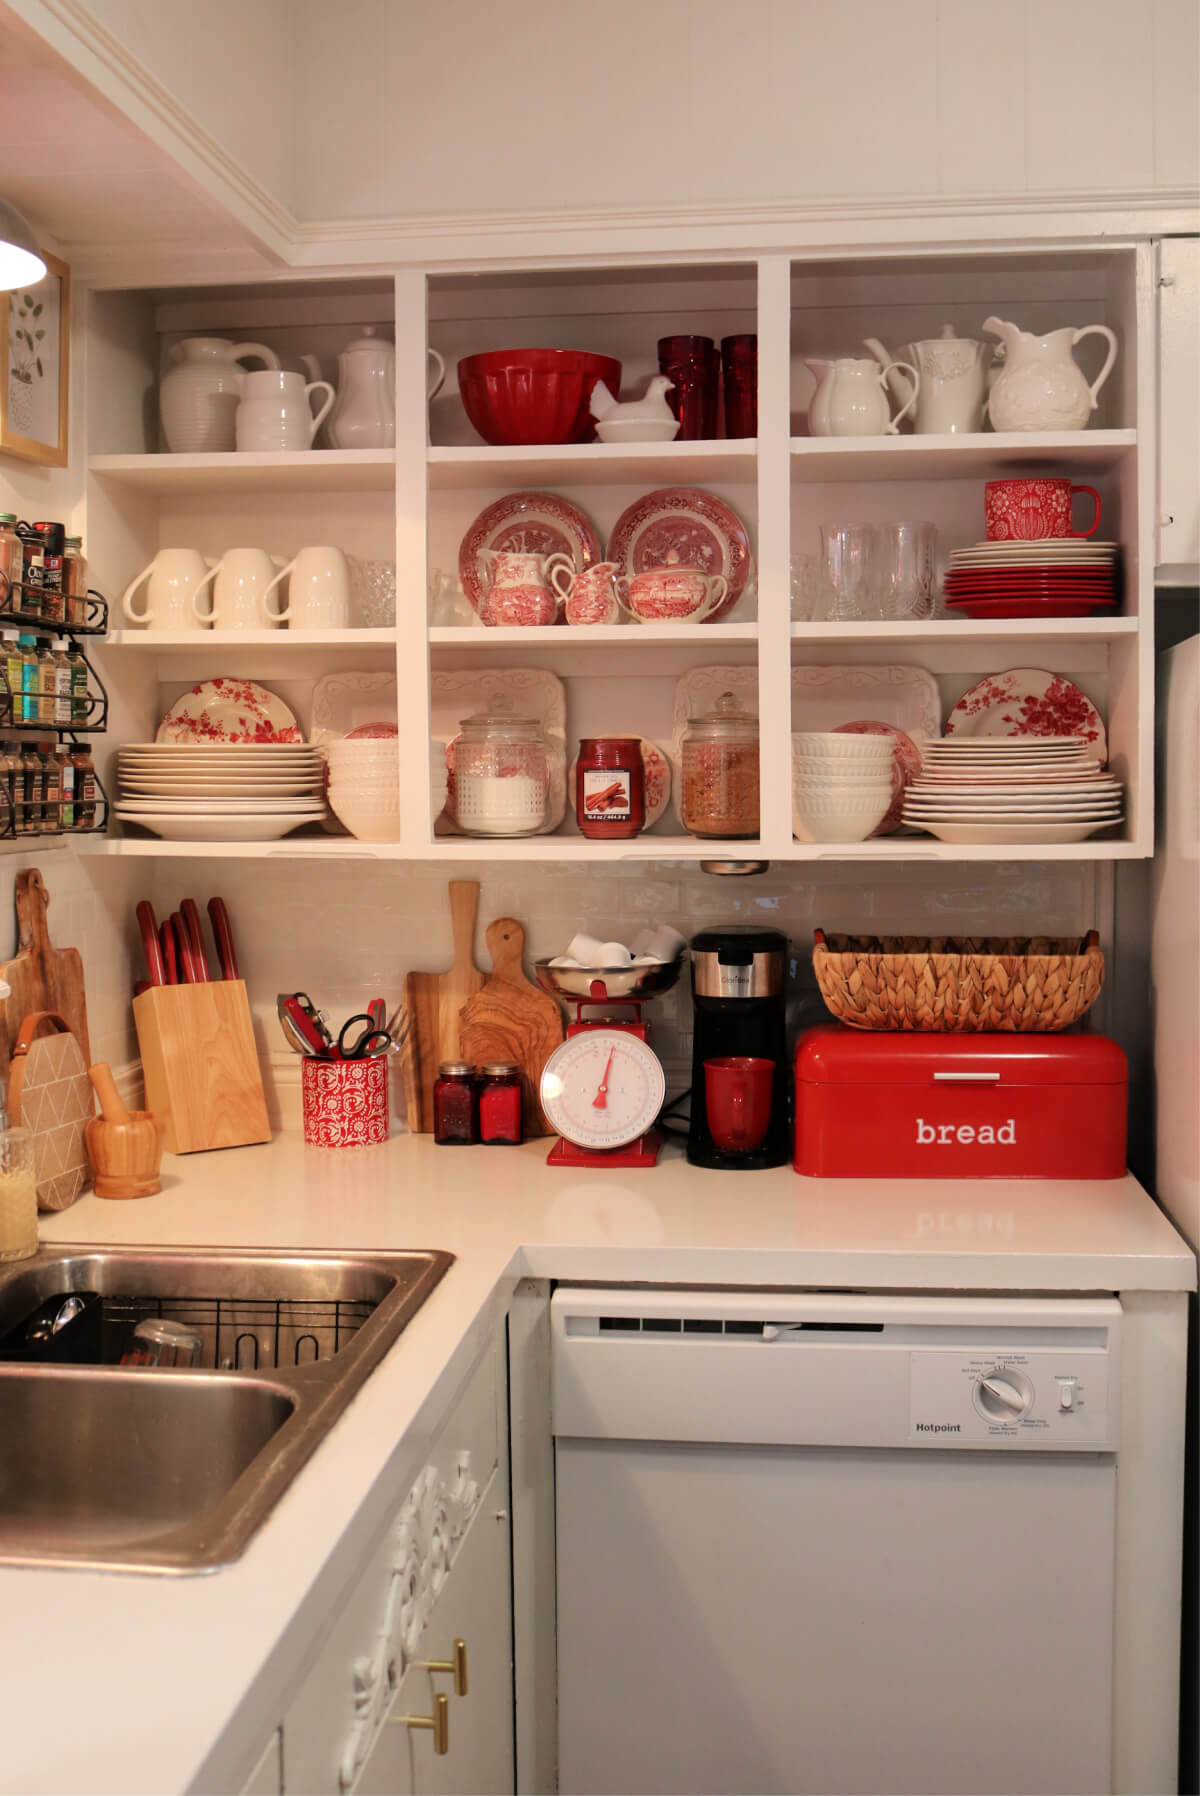 Cleaning & Rearranging Open Kitchen Cabinets